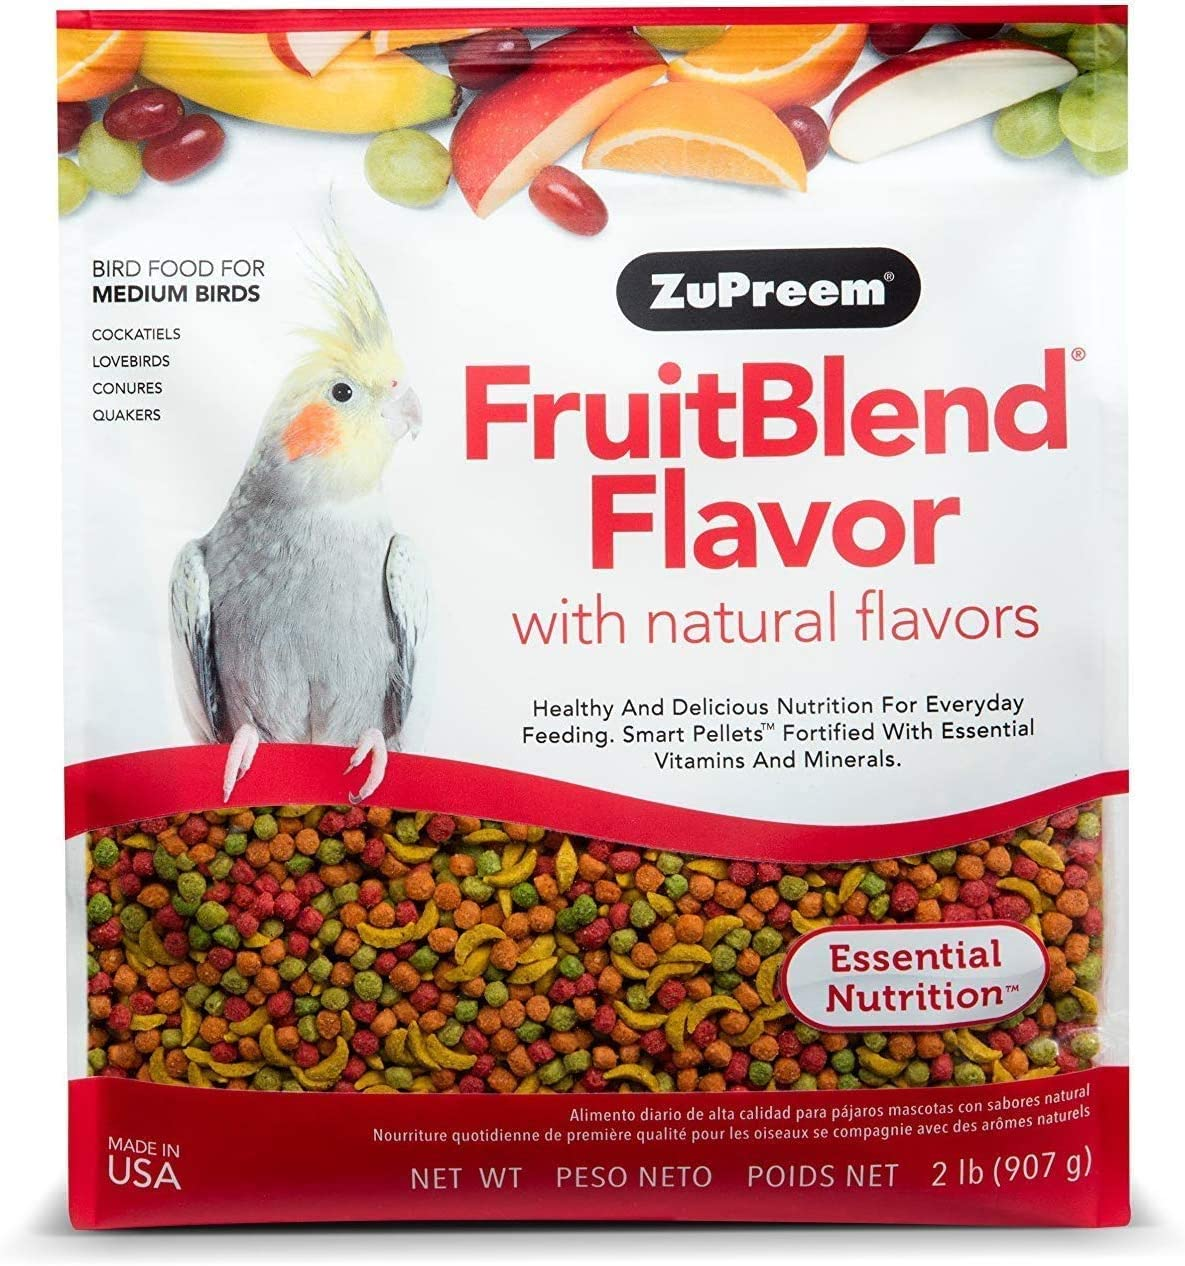 ZuPreem FruitBlend Flavor Pellets Bird Food for Medium Birds | Powerful Pellets Made in USA, Naturally Flavored for Cockatiels, Quakers, Lovebirds, Small Conures